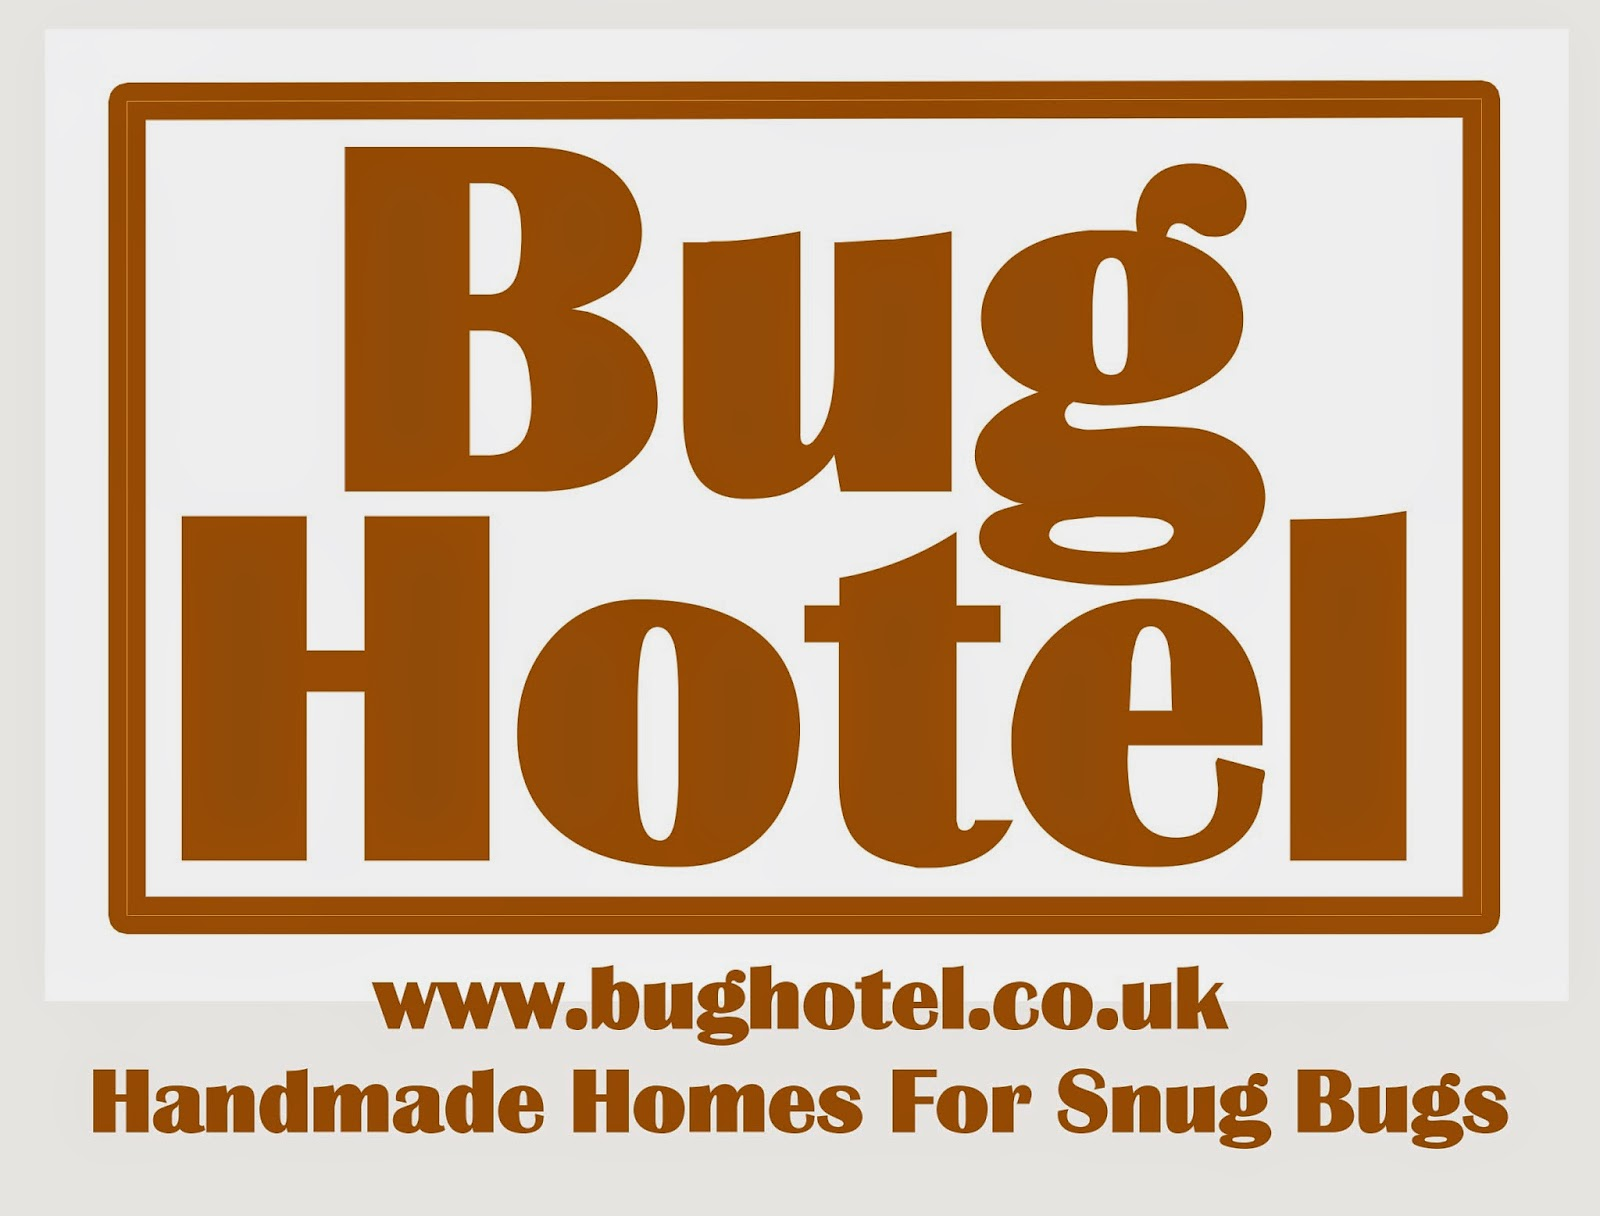 www.bughotel.co.uk